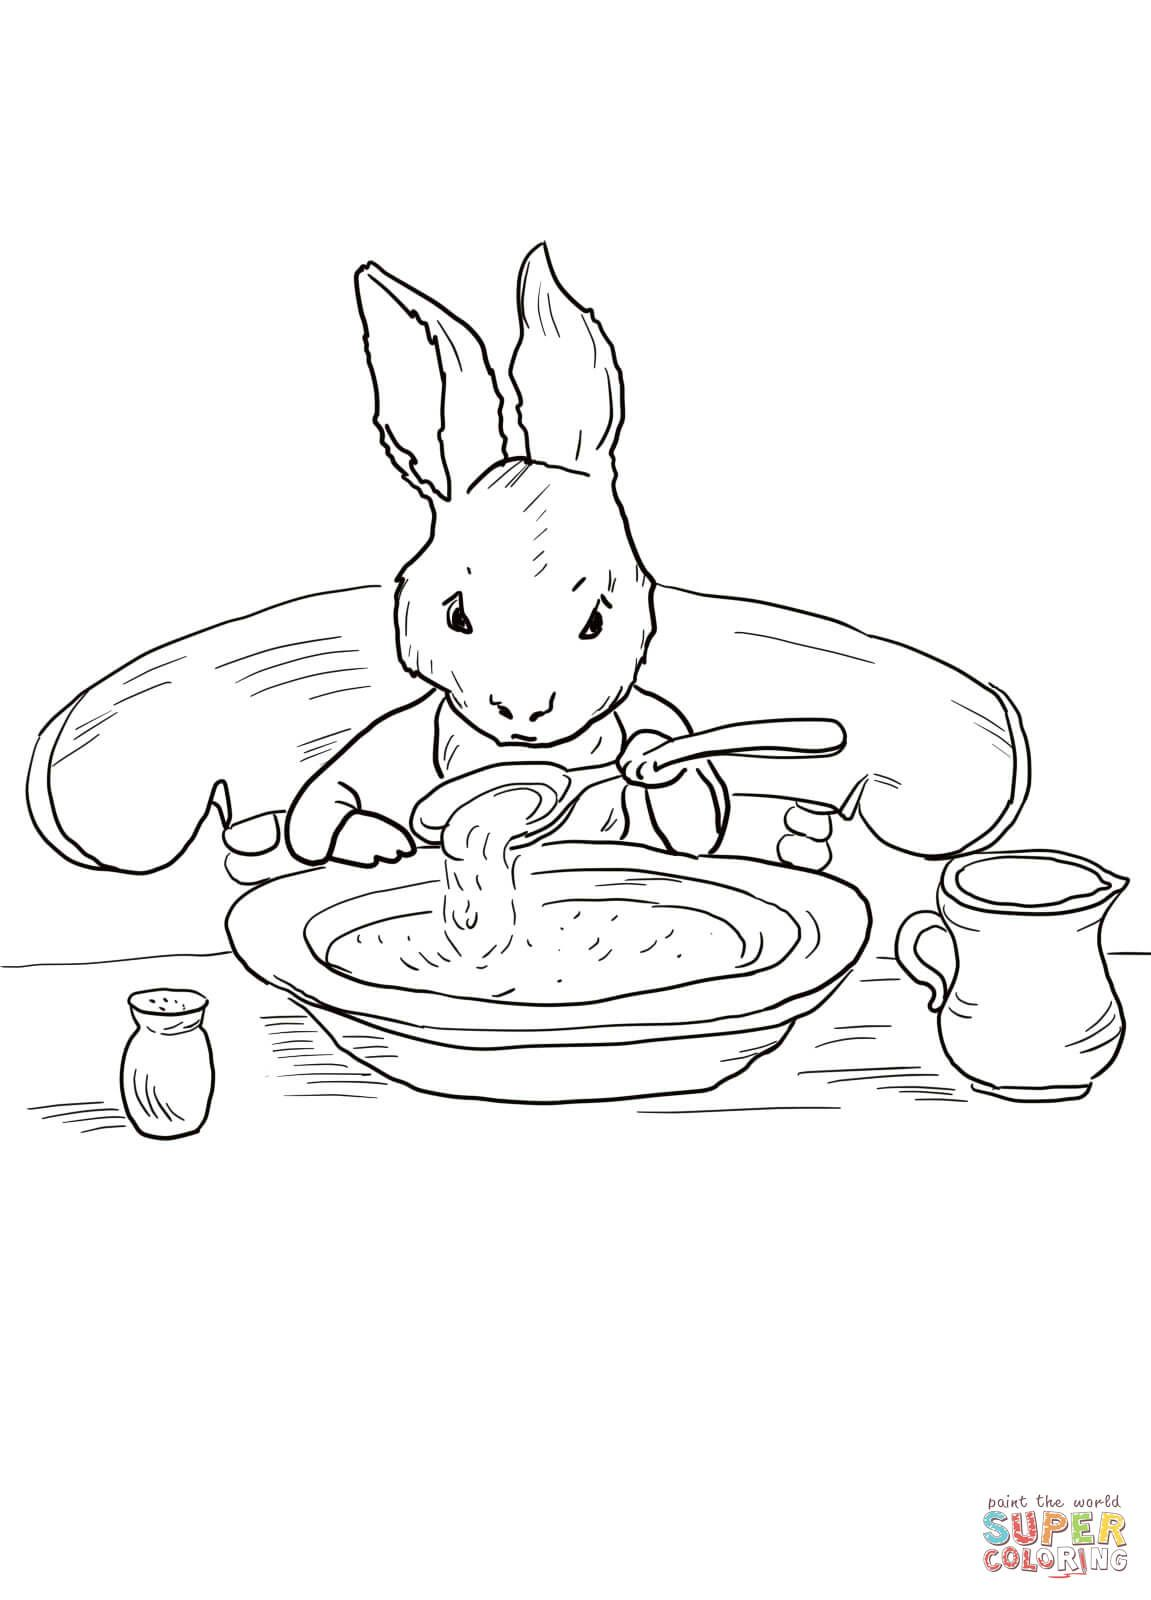 Peter Rabbit At Home Bunny Coloring Pages Peter Rabbit And Friends Peter Rabbit Pictures